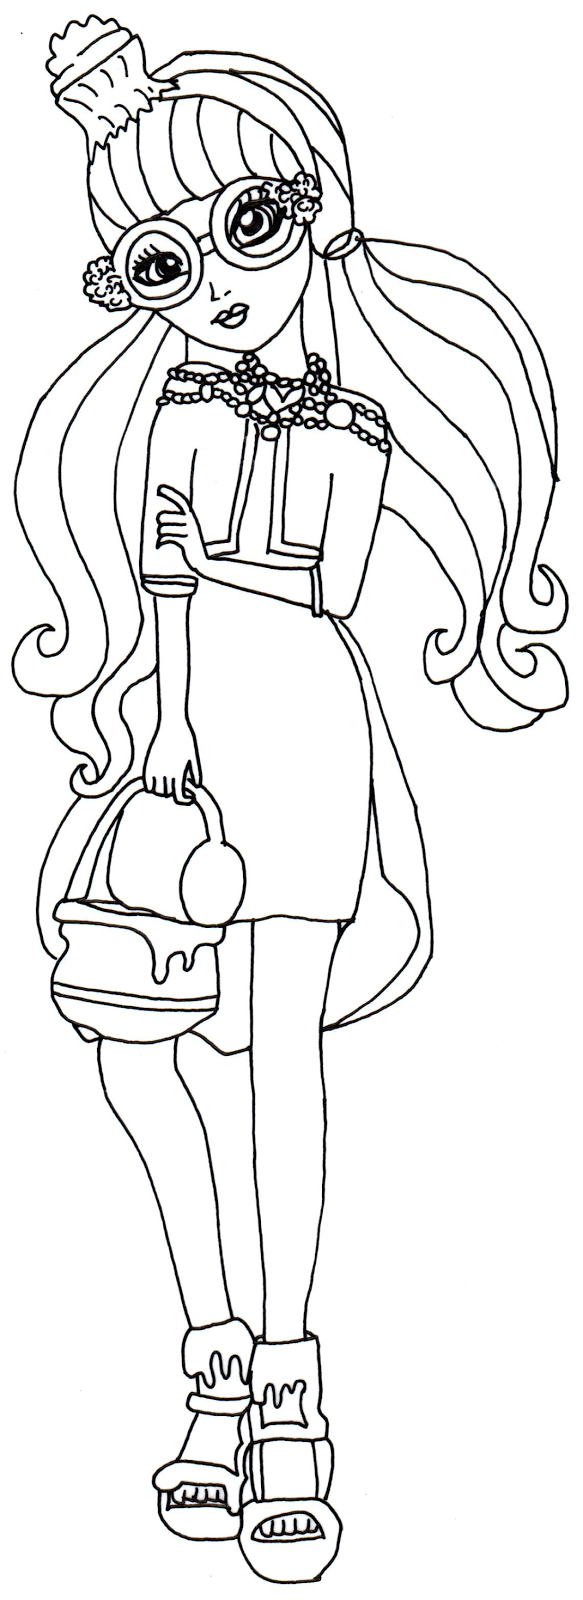 20+ Free Printable Ever After High Coloring Pages ... | 1600x583